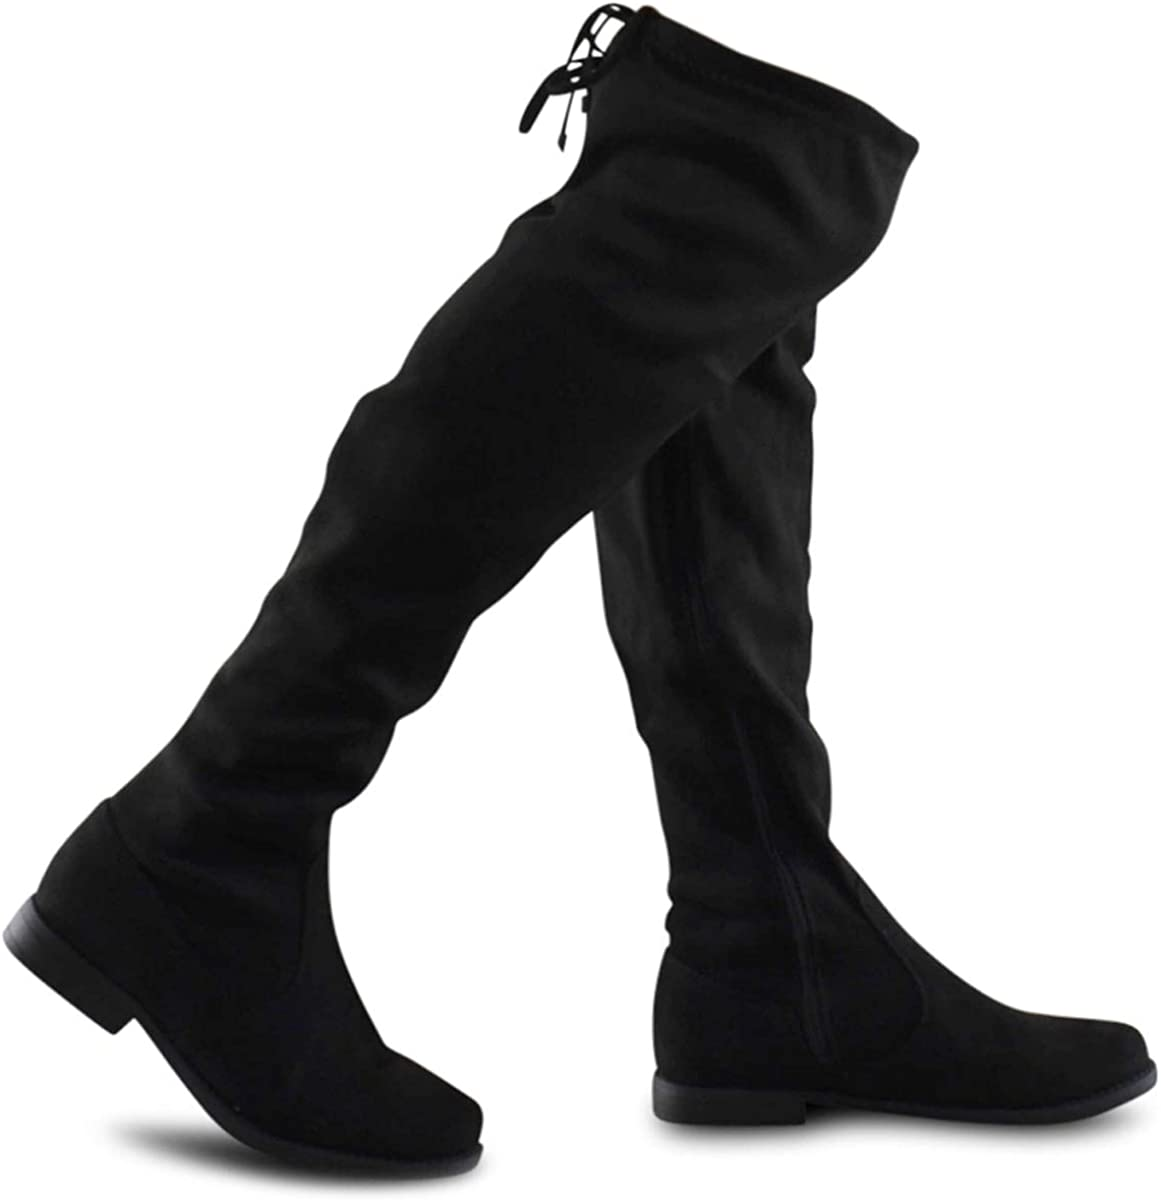 The Knee Riding Boots